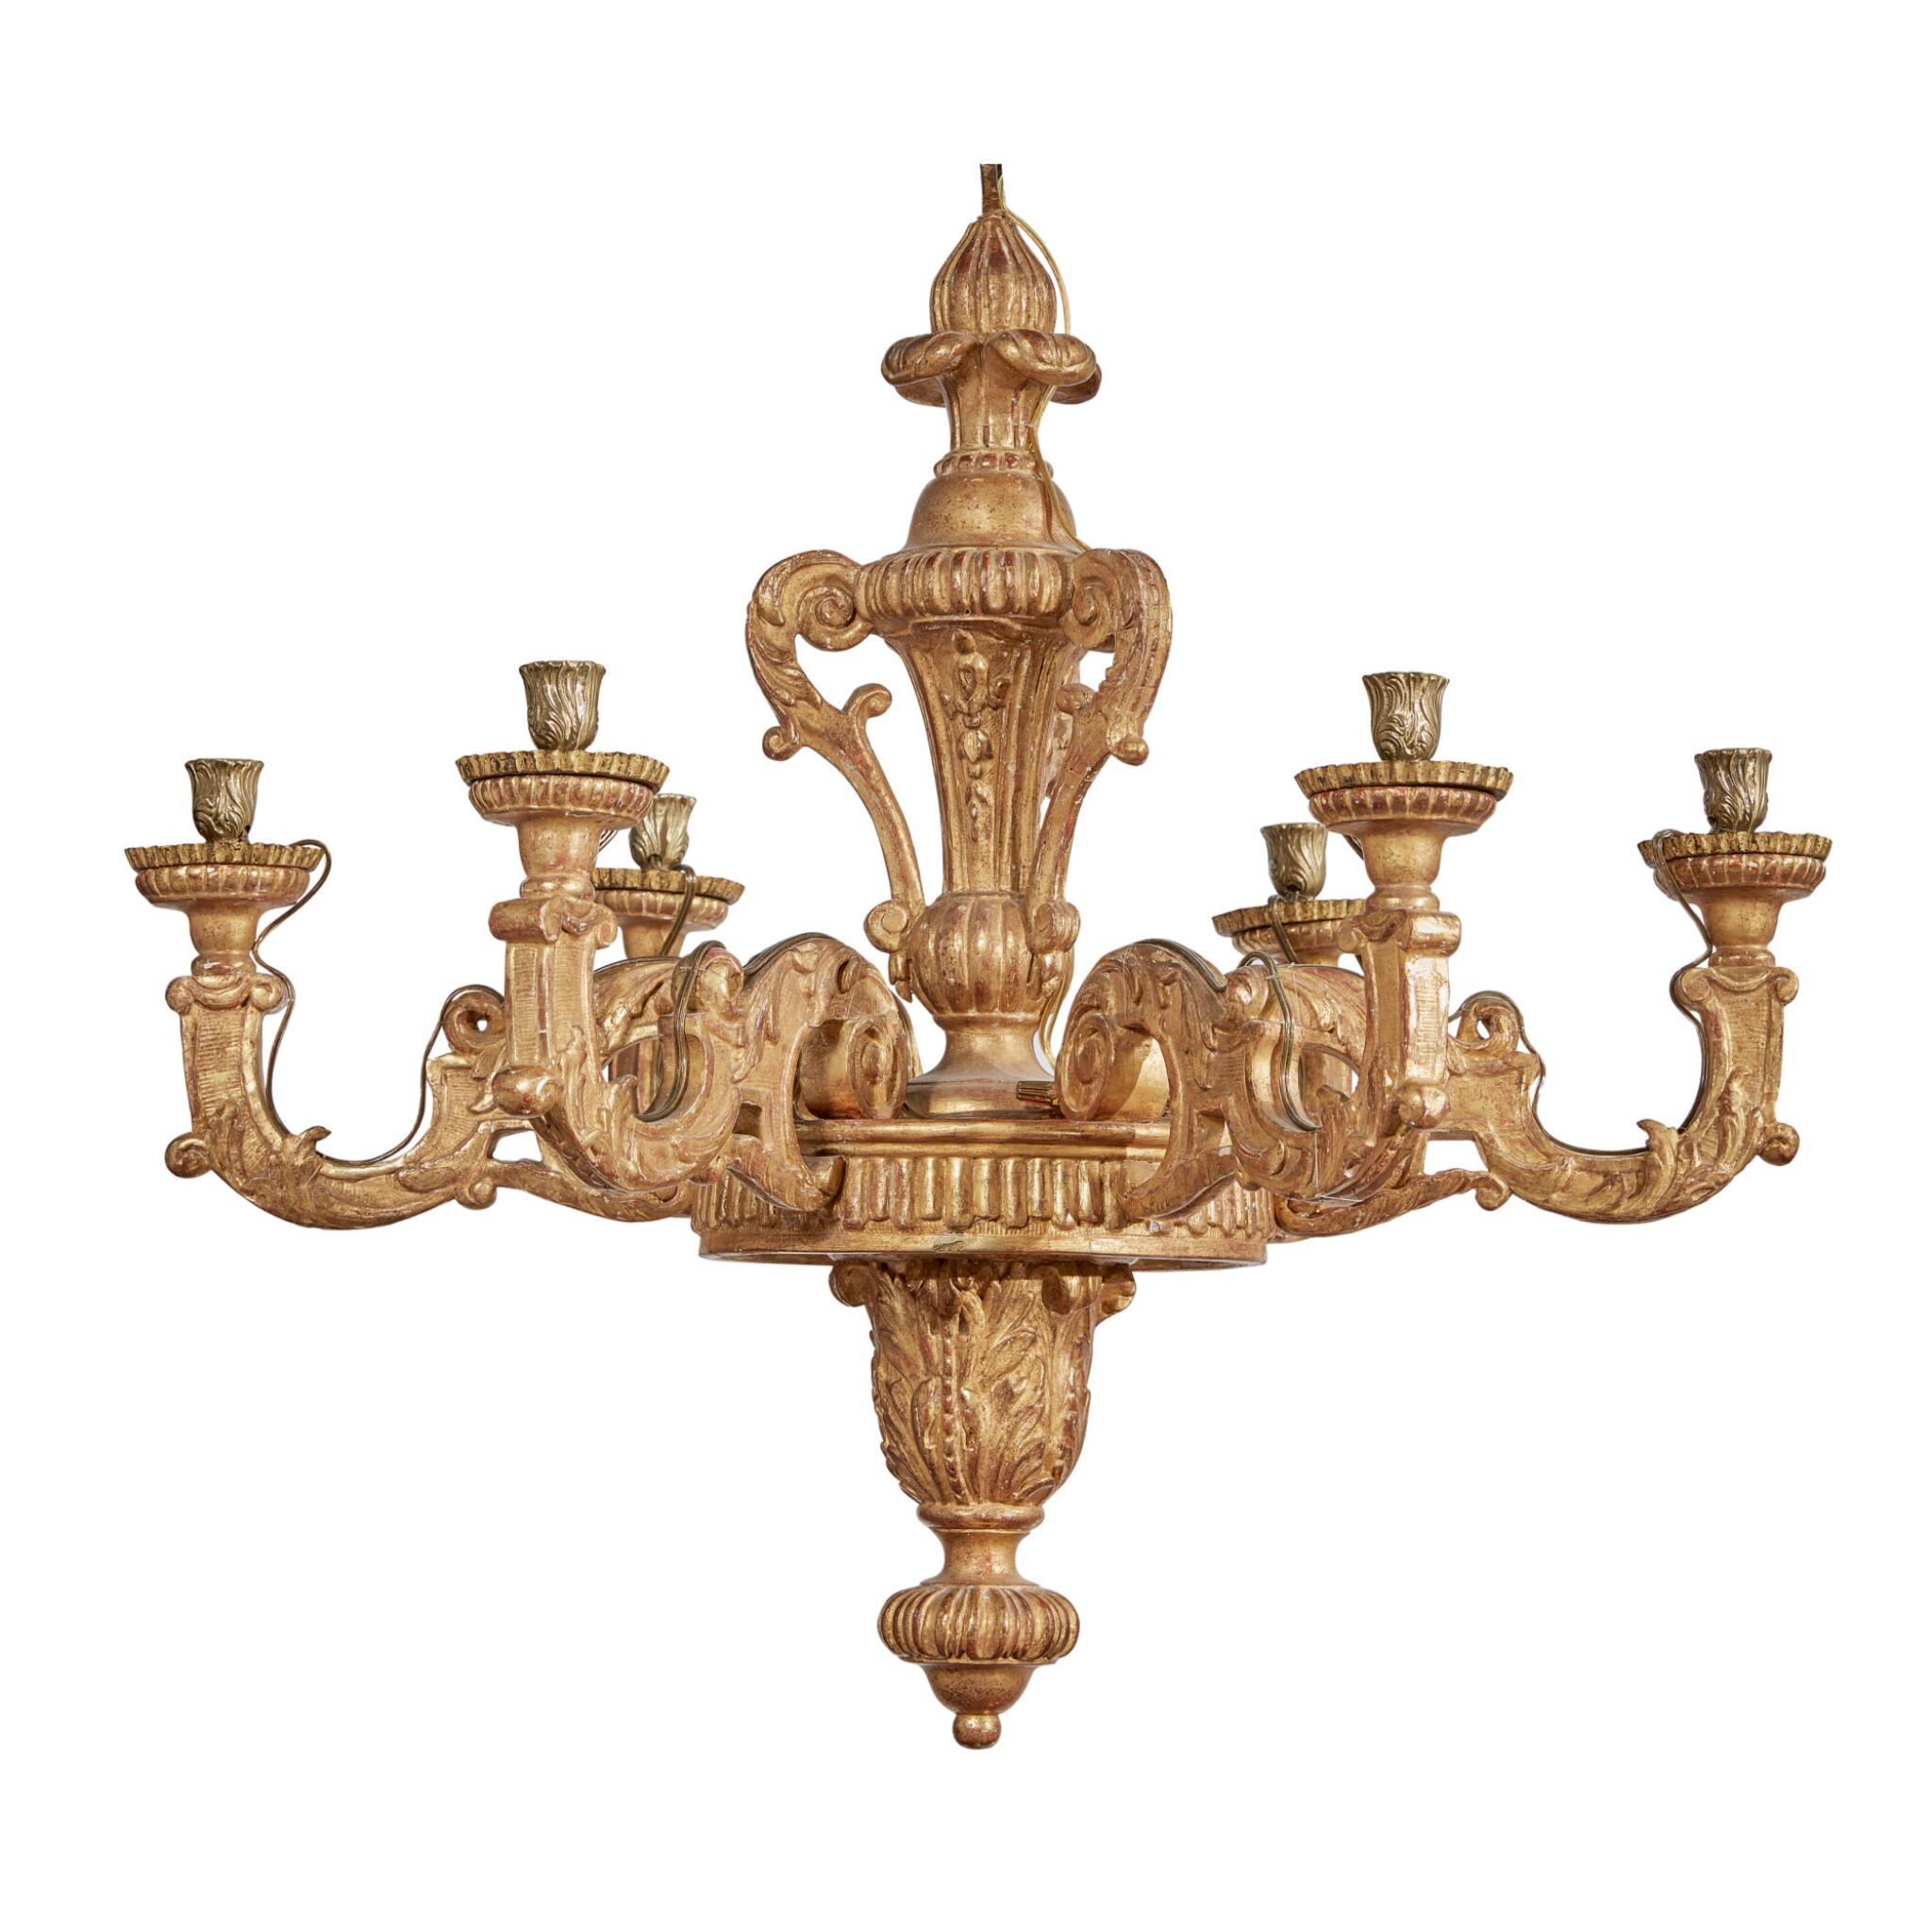 View full screen - View 1 of Lot 182. A LOUIS XIV CARVED GILTWOOD SIX-LIGHT CHANDELIER, CIRCA 1700.